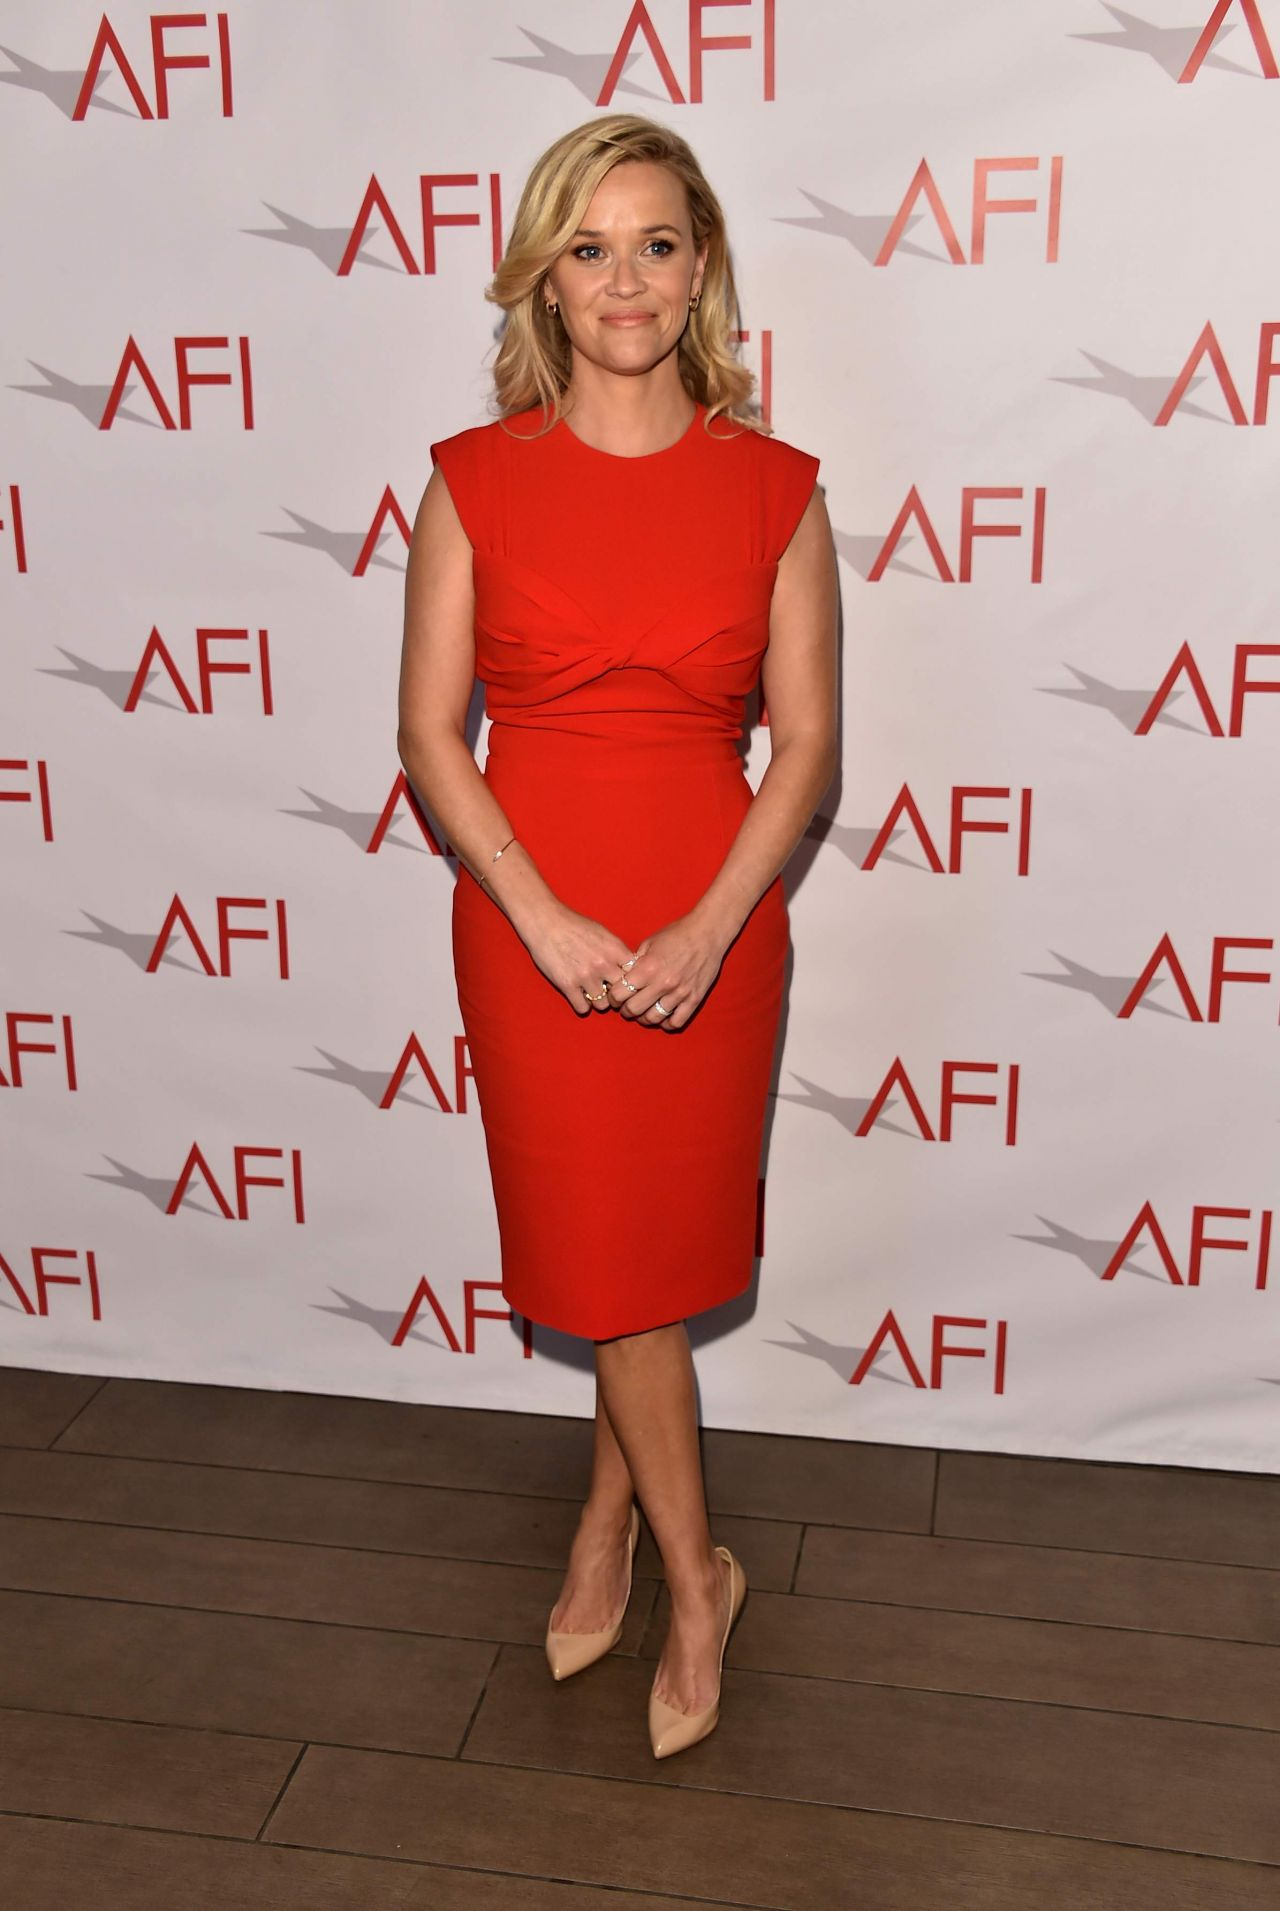 http://celebmafia.com/wp-content/uploads/2018/01/reese-witherspoon-afi-awards-2018-in-los-angeles-8.jpg